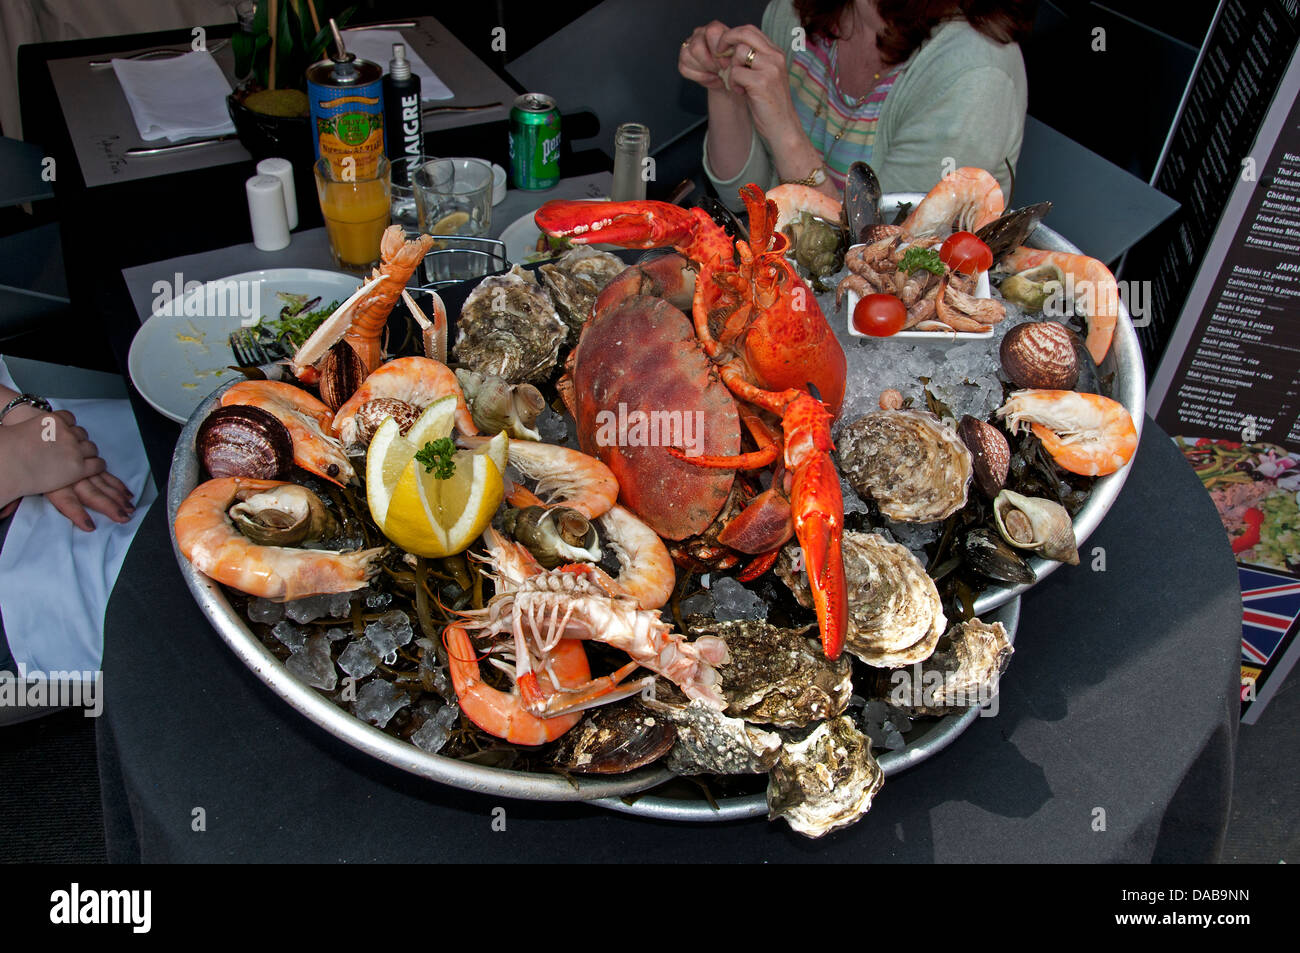 Lobster And Scallops Stock Photos & Lobster And Scallops Stock Images - Alamy